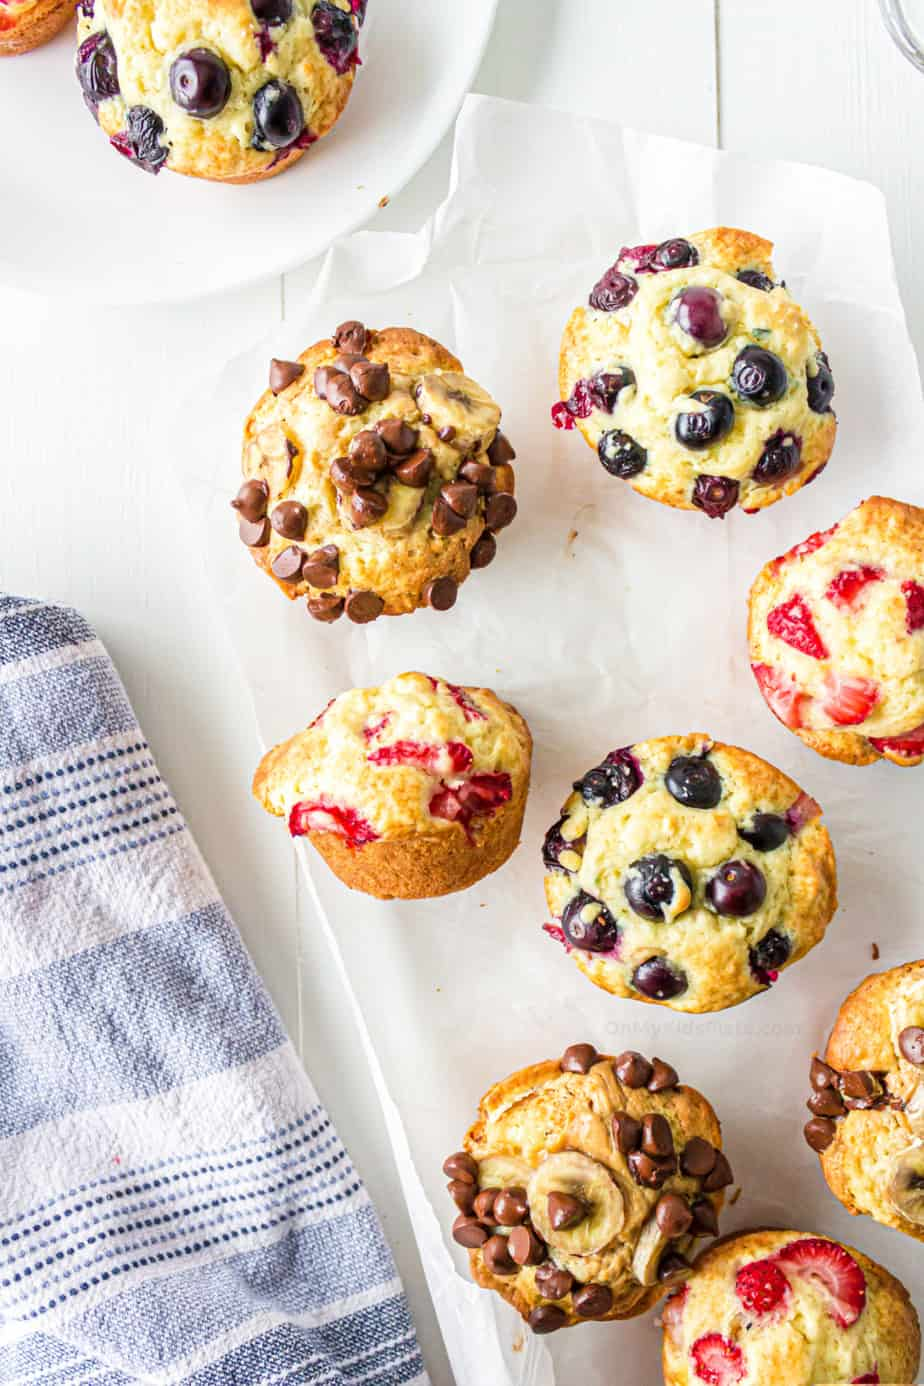 Strawberry, chocolate chip banana and blueberry muffins on parchment paper to serve.